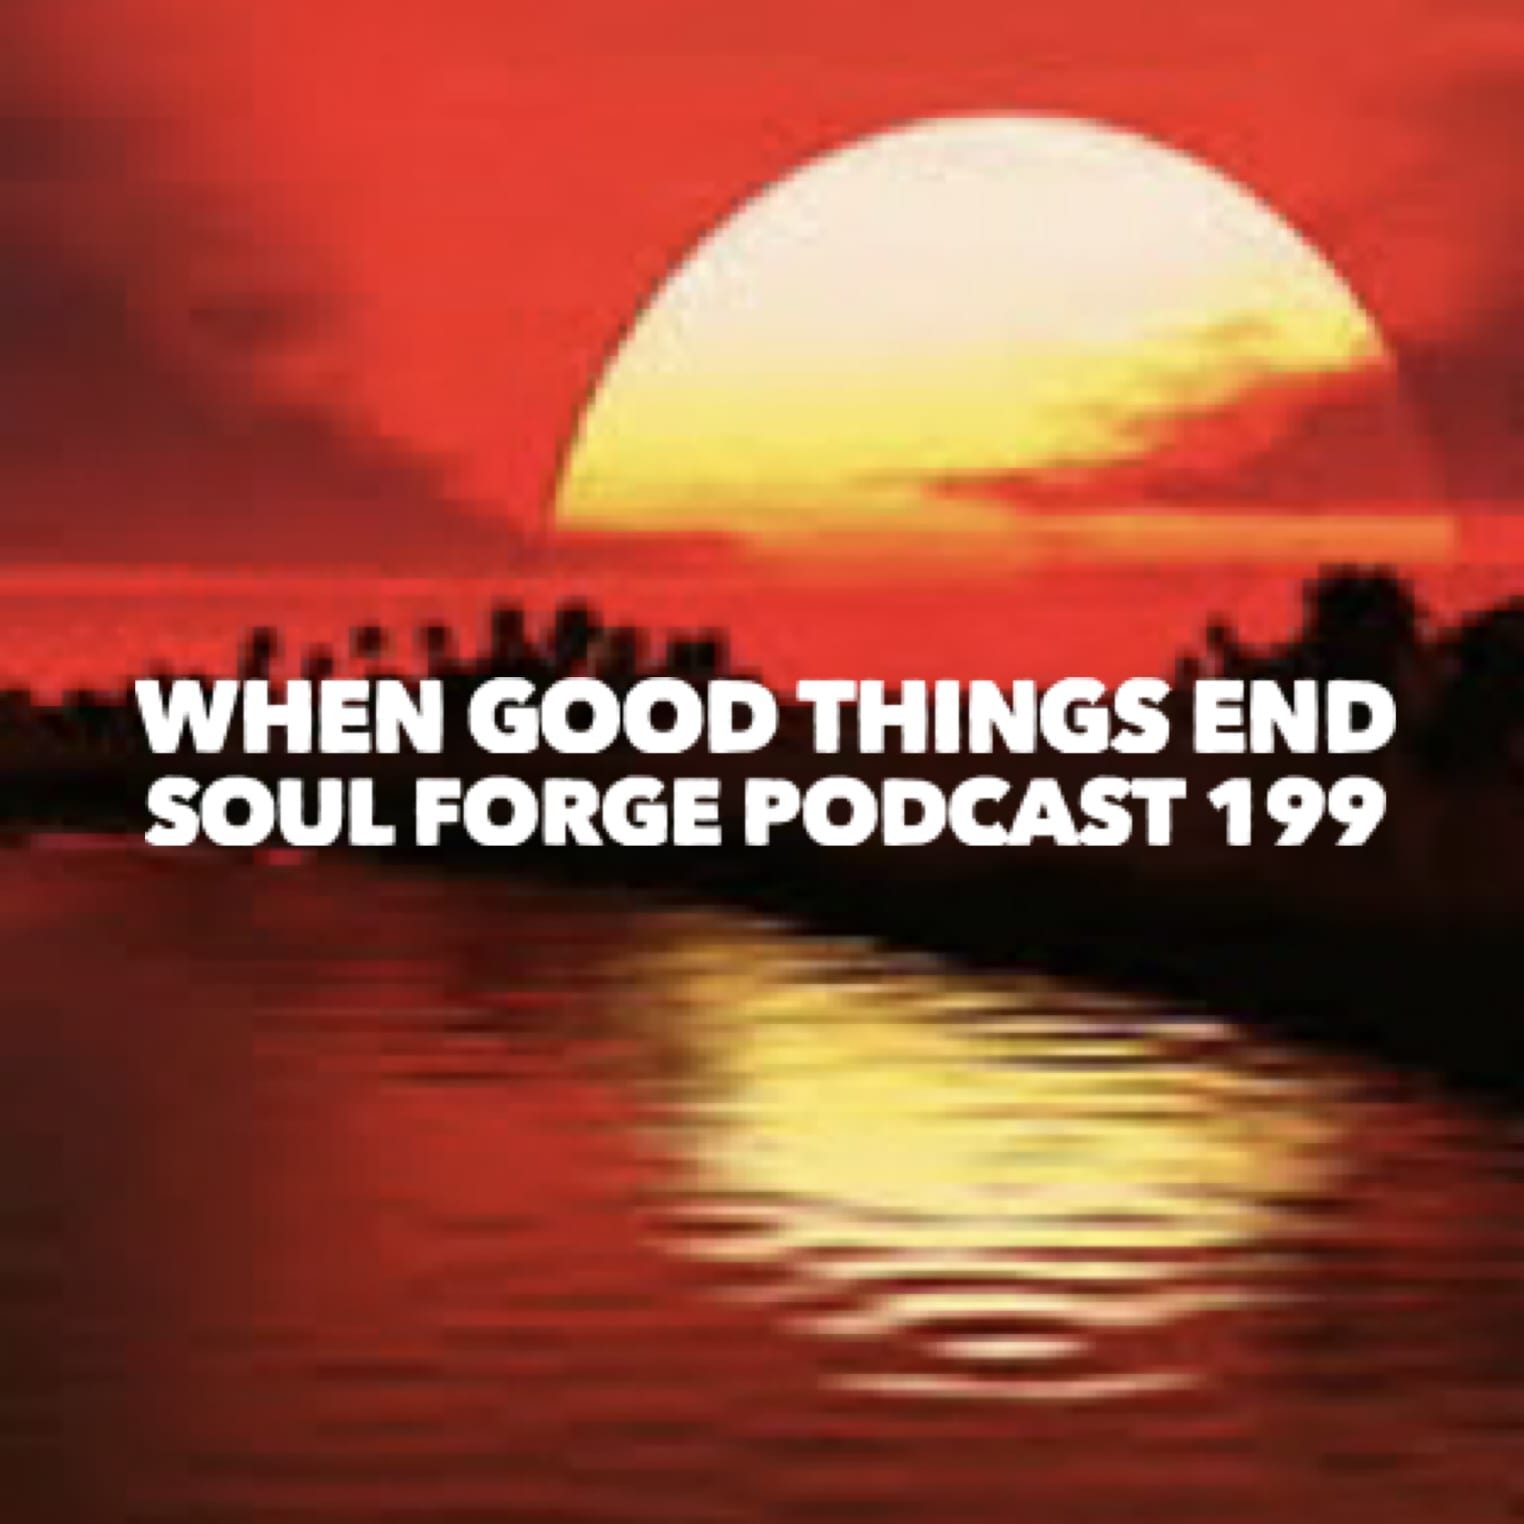 When good things end